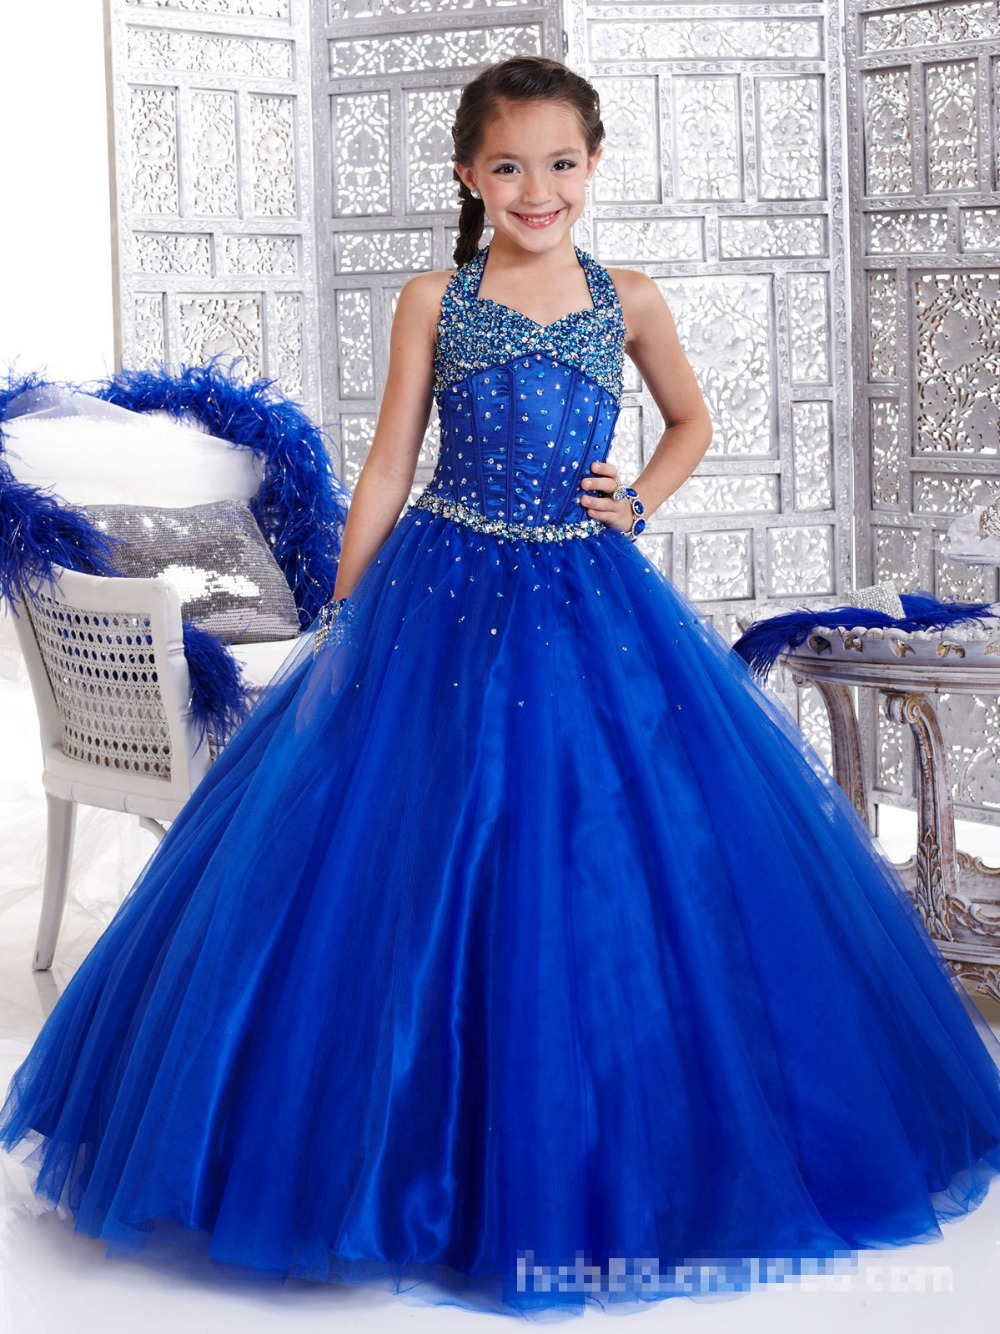 ФОТО Custom Girls Blue Set Auger Dresses Ball Gown Stage Performance Long Dress Princess Party Dress Flower Girls For Wedding Dresses